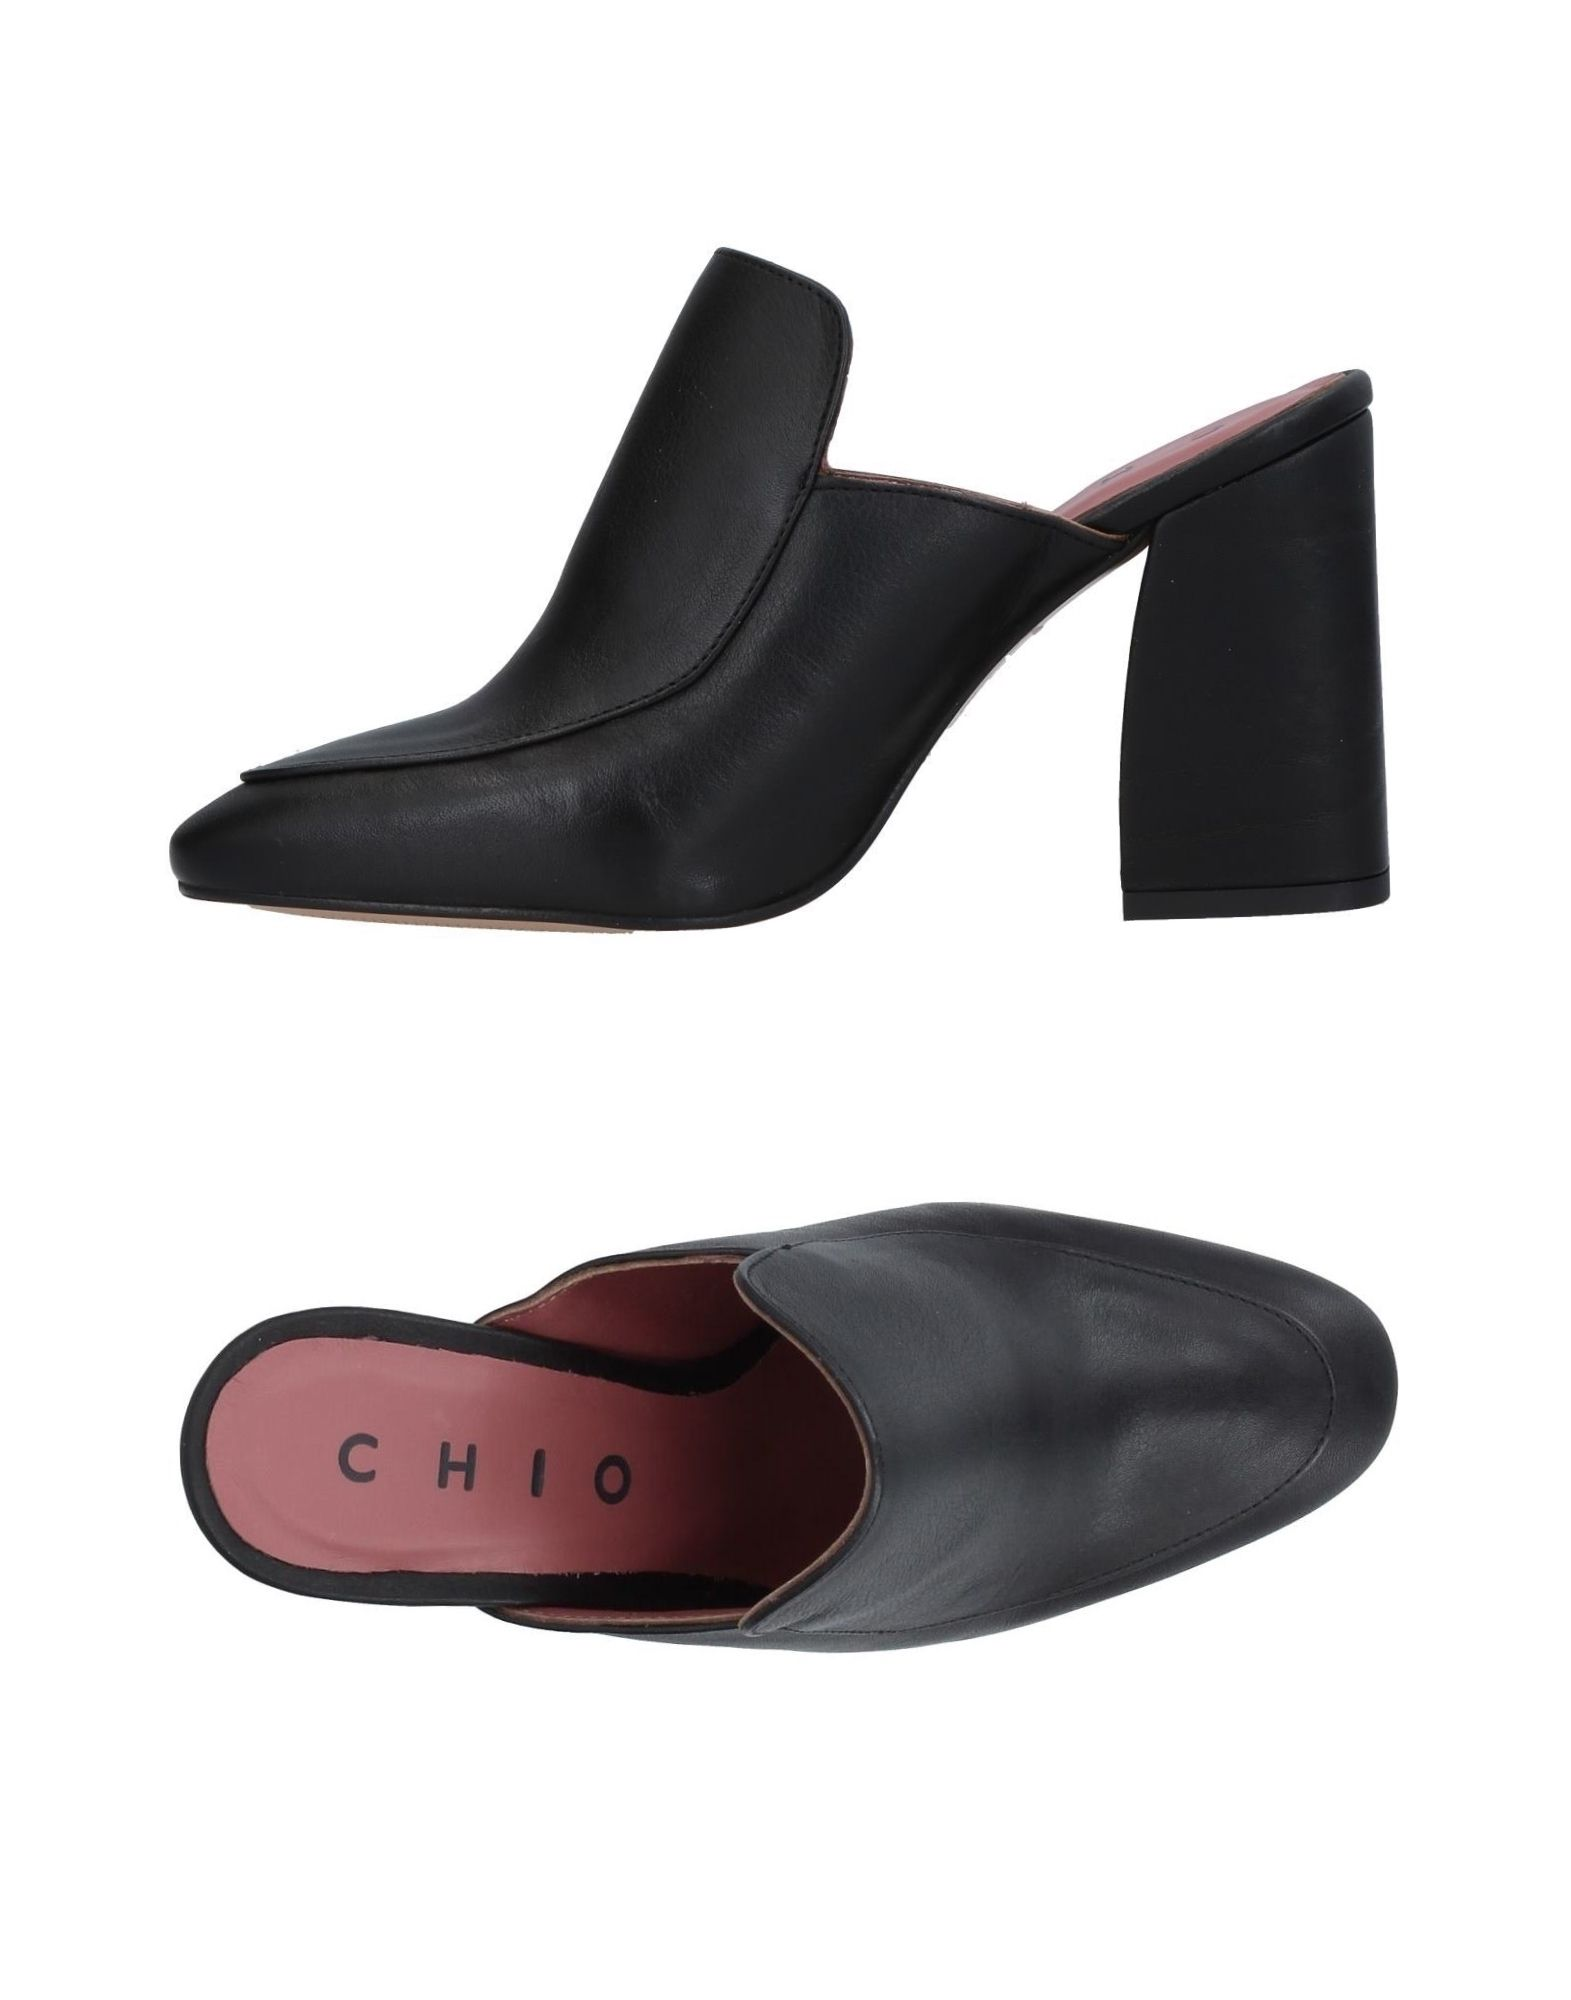 CHIO Loafers in Black